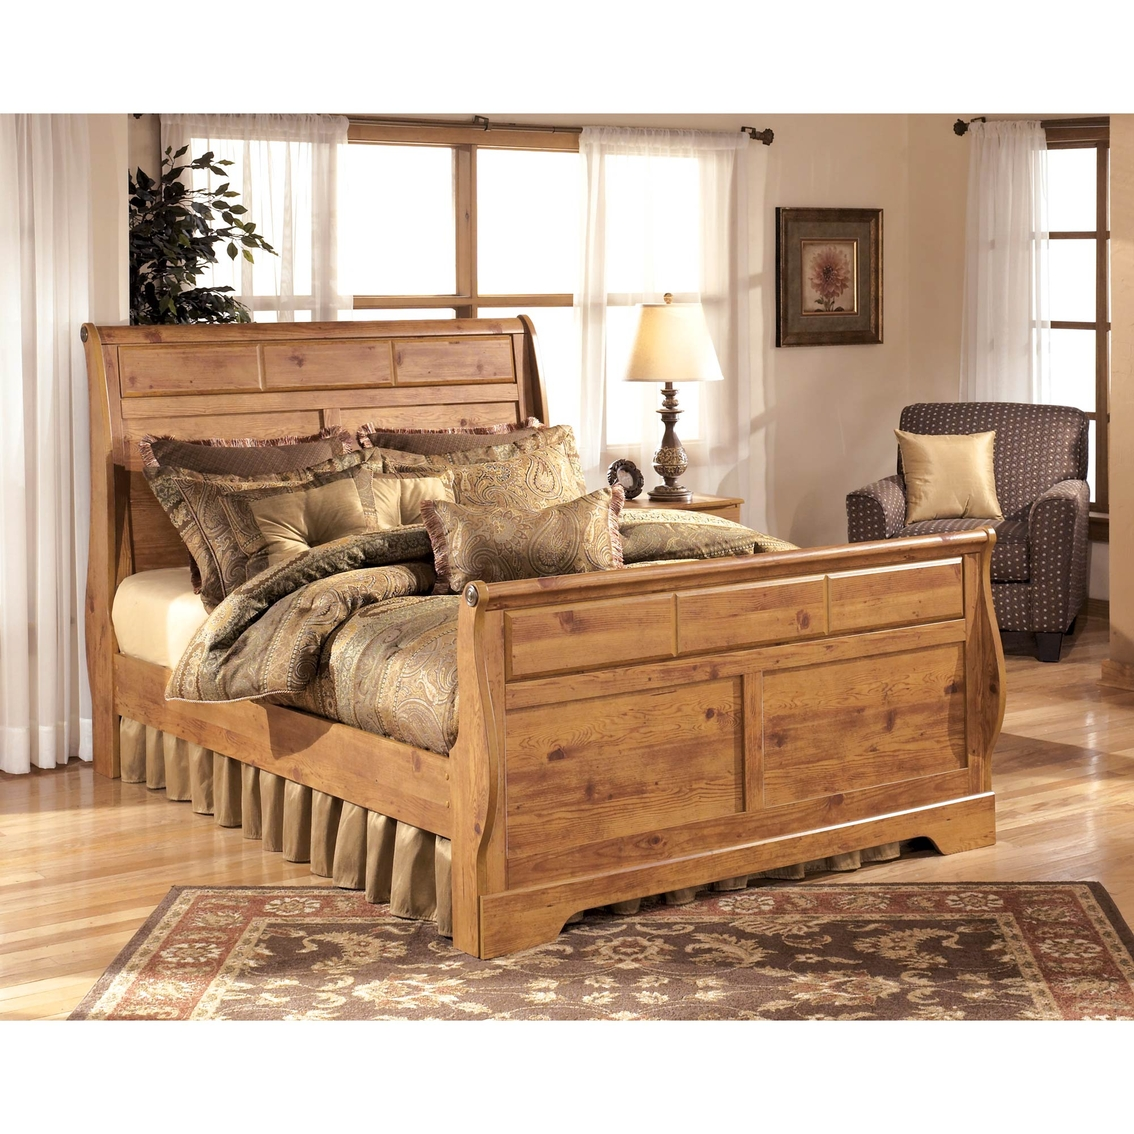 Signature Design By Ashley Bittersweet Sleigh Bed Beds